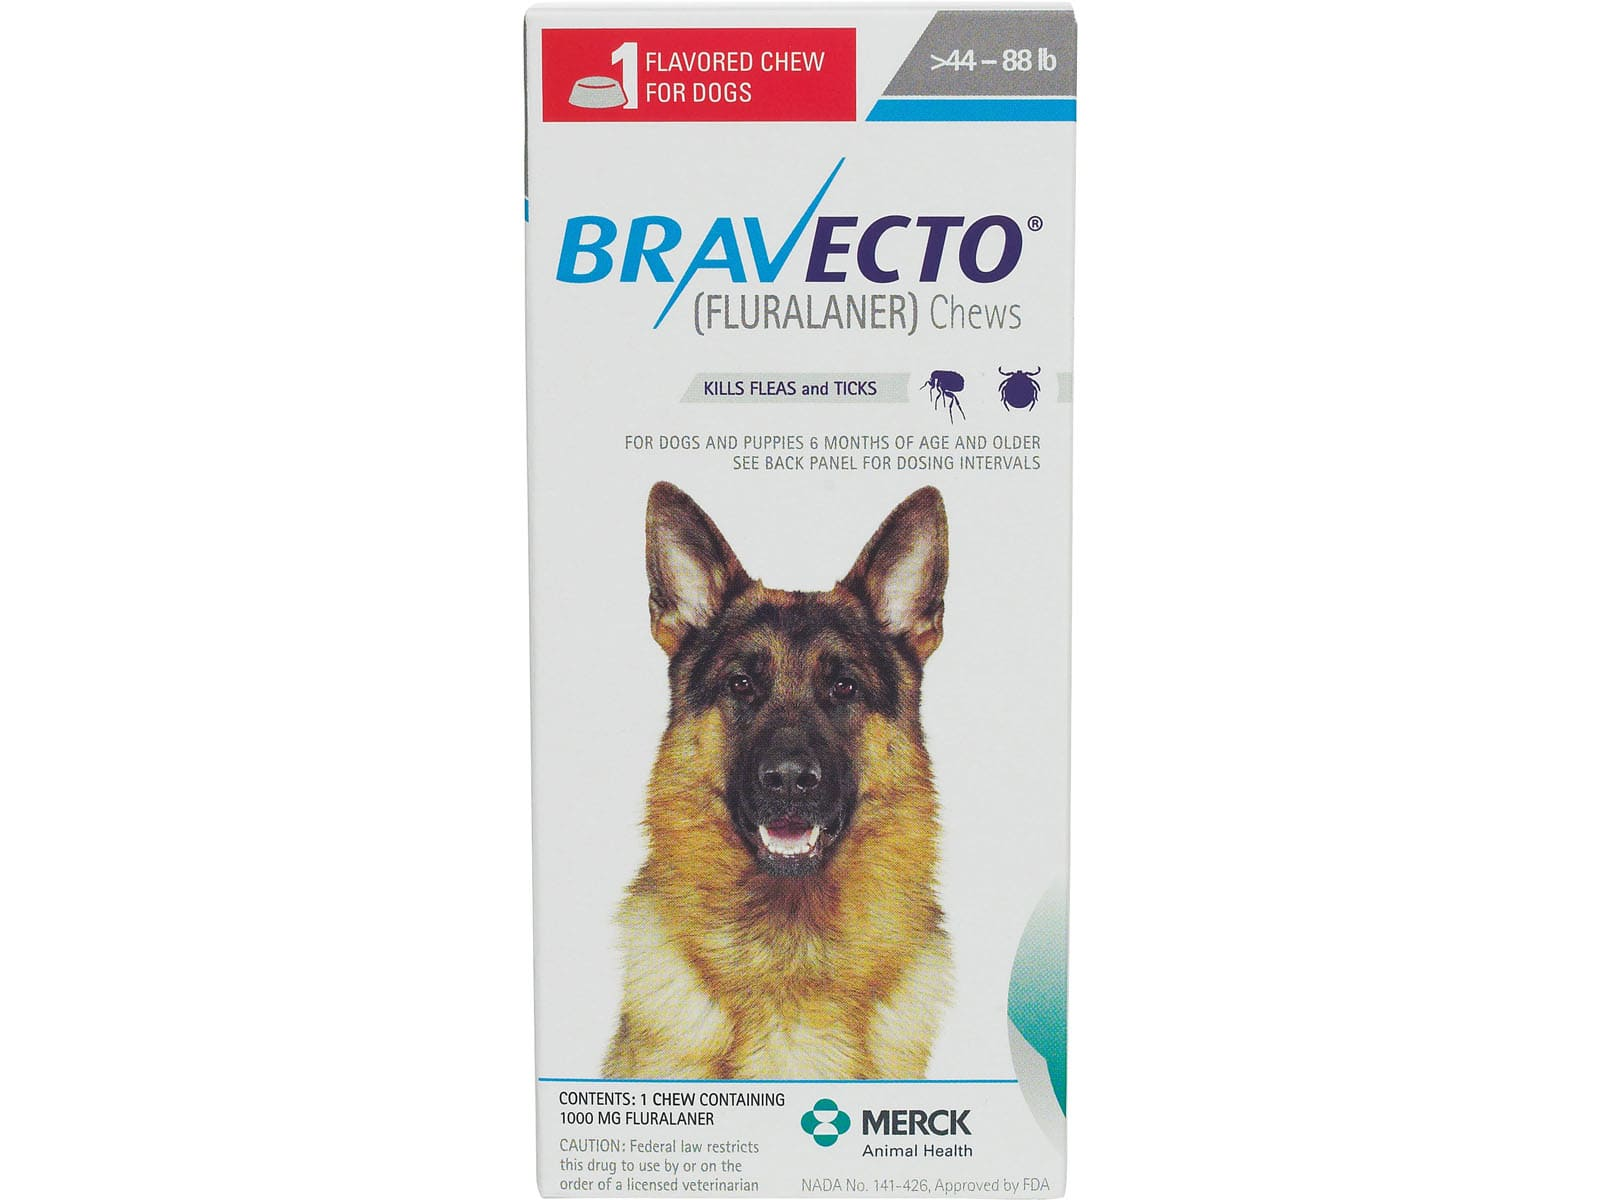 Spectrum Tampa Fl >> Bravecto 1000 mg for dogs 44-88 lbs 1 TABLET